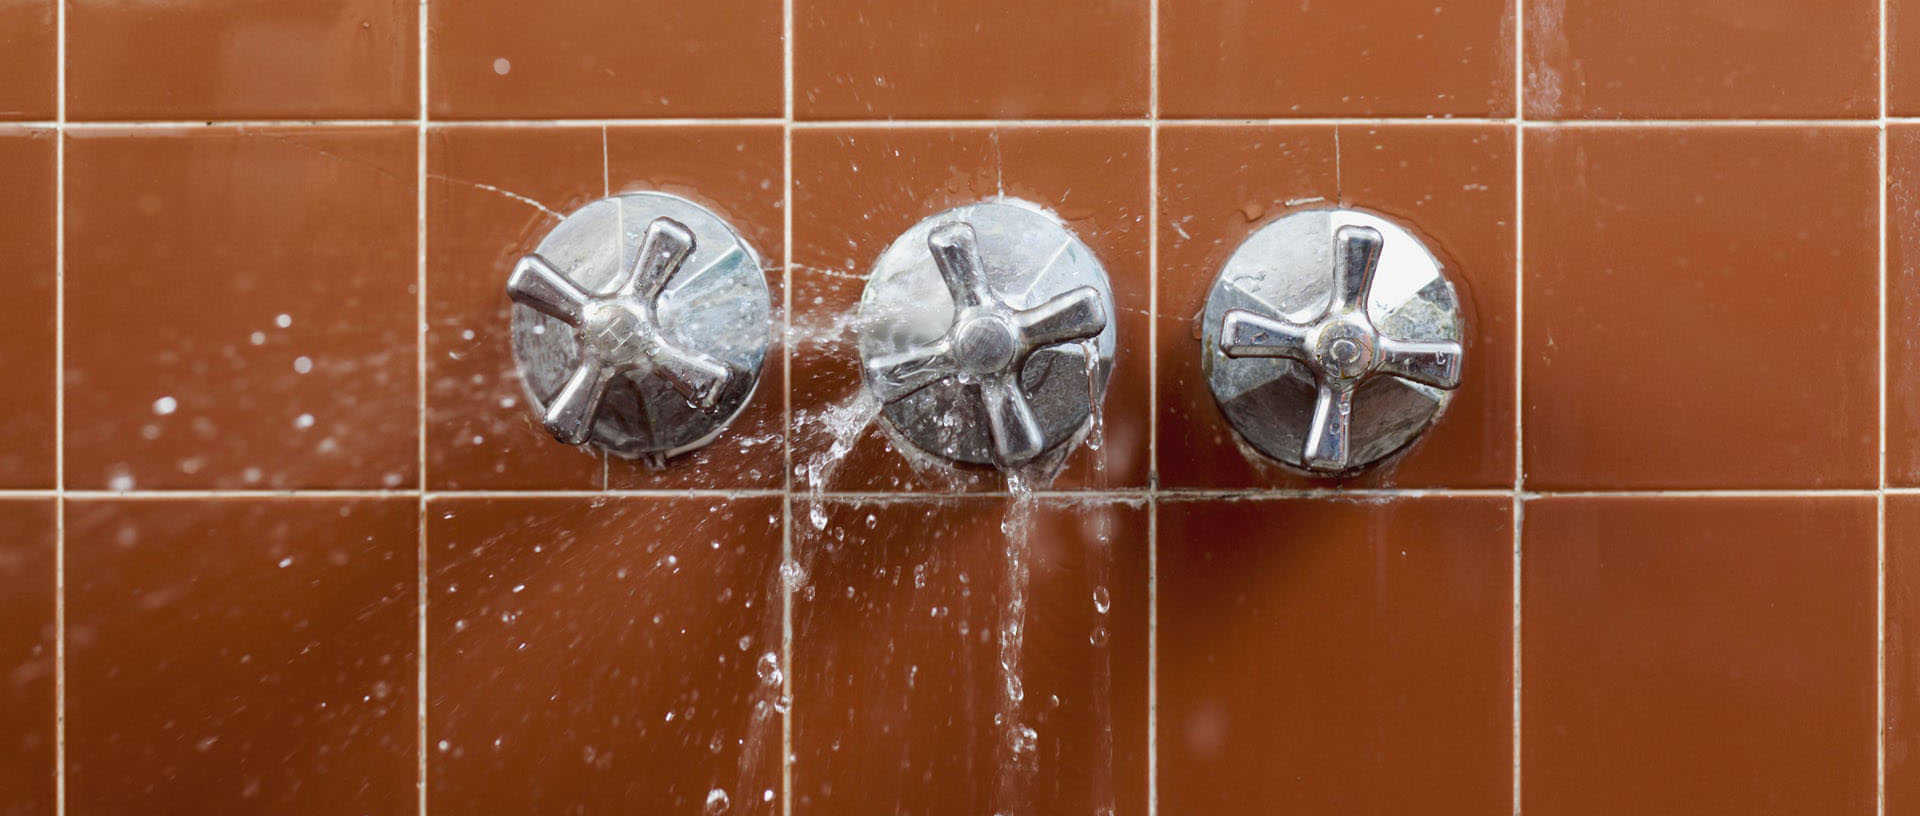 Spanish municipal councillor offers to resign after showering during live video meeting